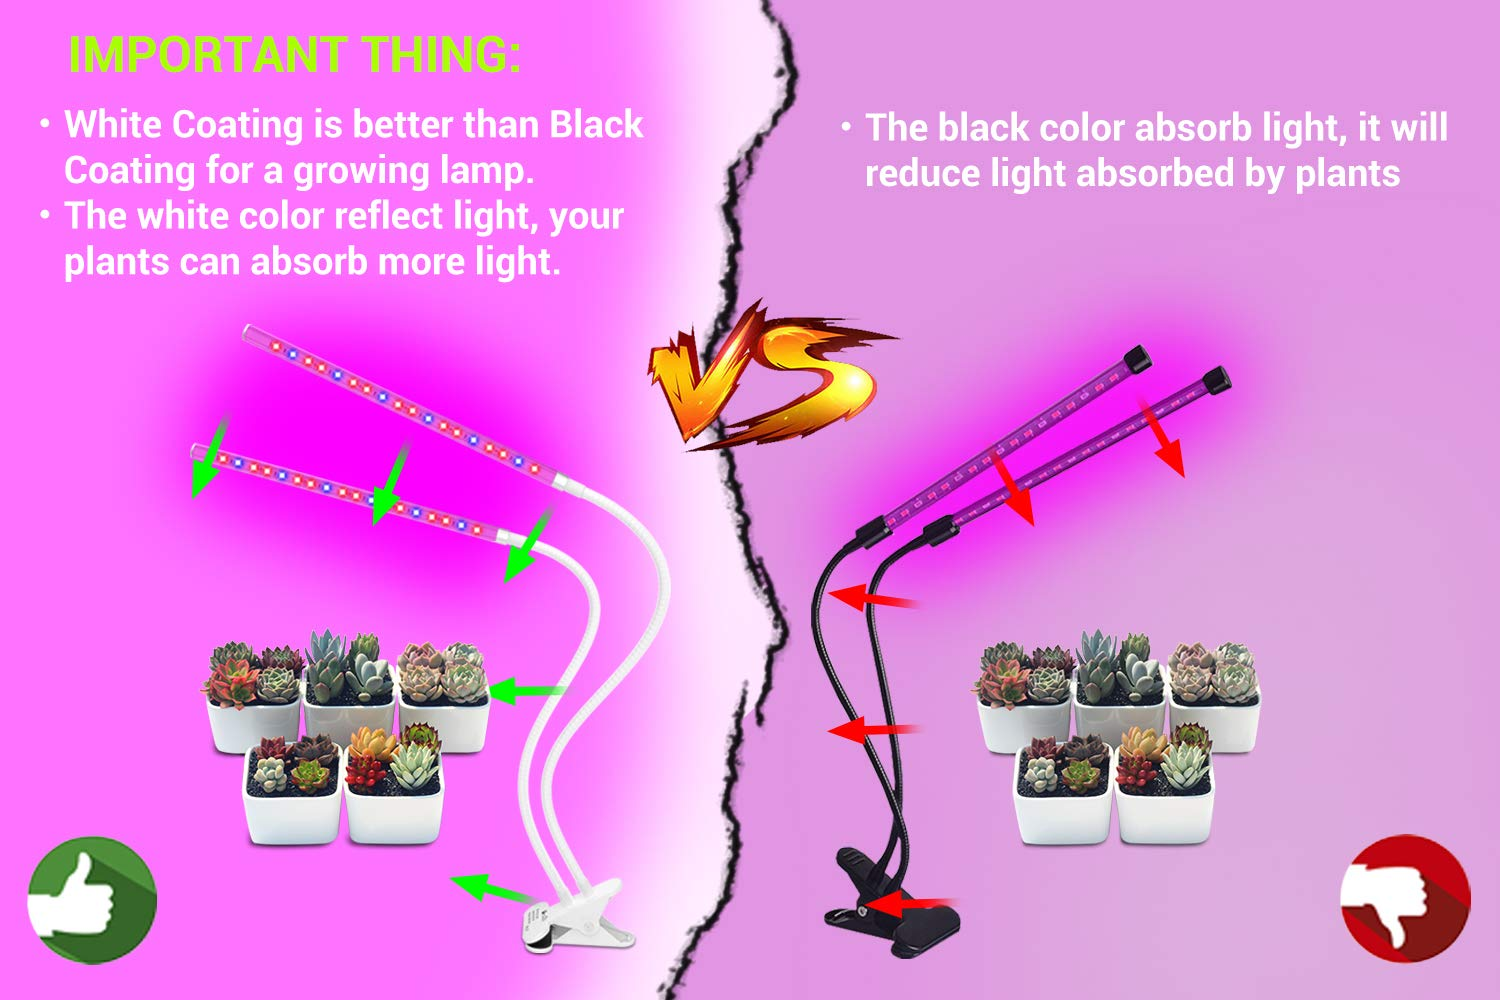 OxyLED Grow Light for Indoor Plants, Timing Function Dual Head Plant Light, 36 LED 5 Dimmable Levels Grow Lamp with Flexible Gooseneck for Hydroponics Greenhouse Gardening by OxyLED (Image #3)